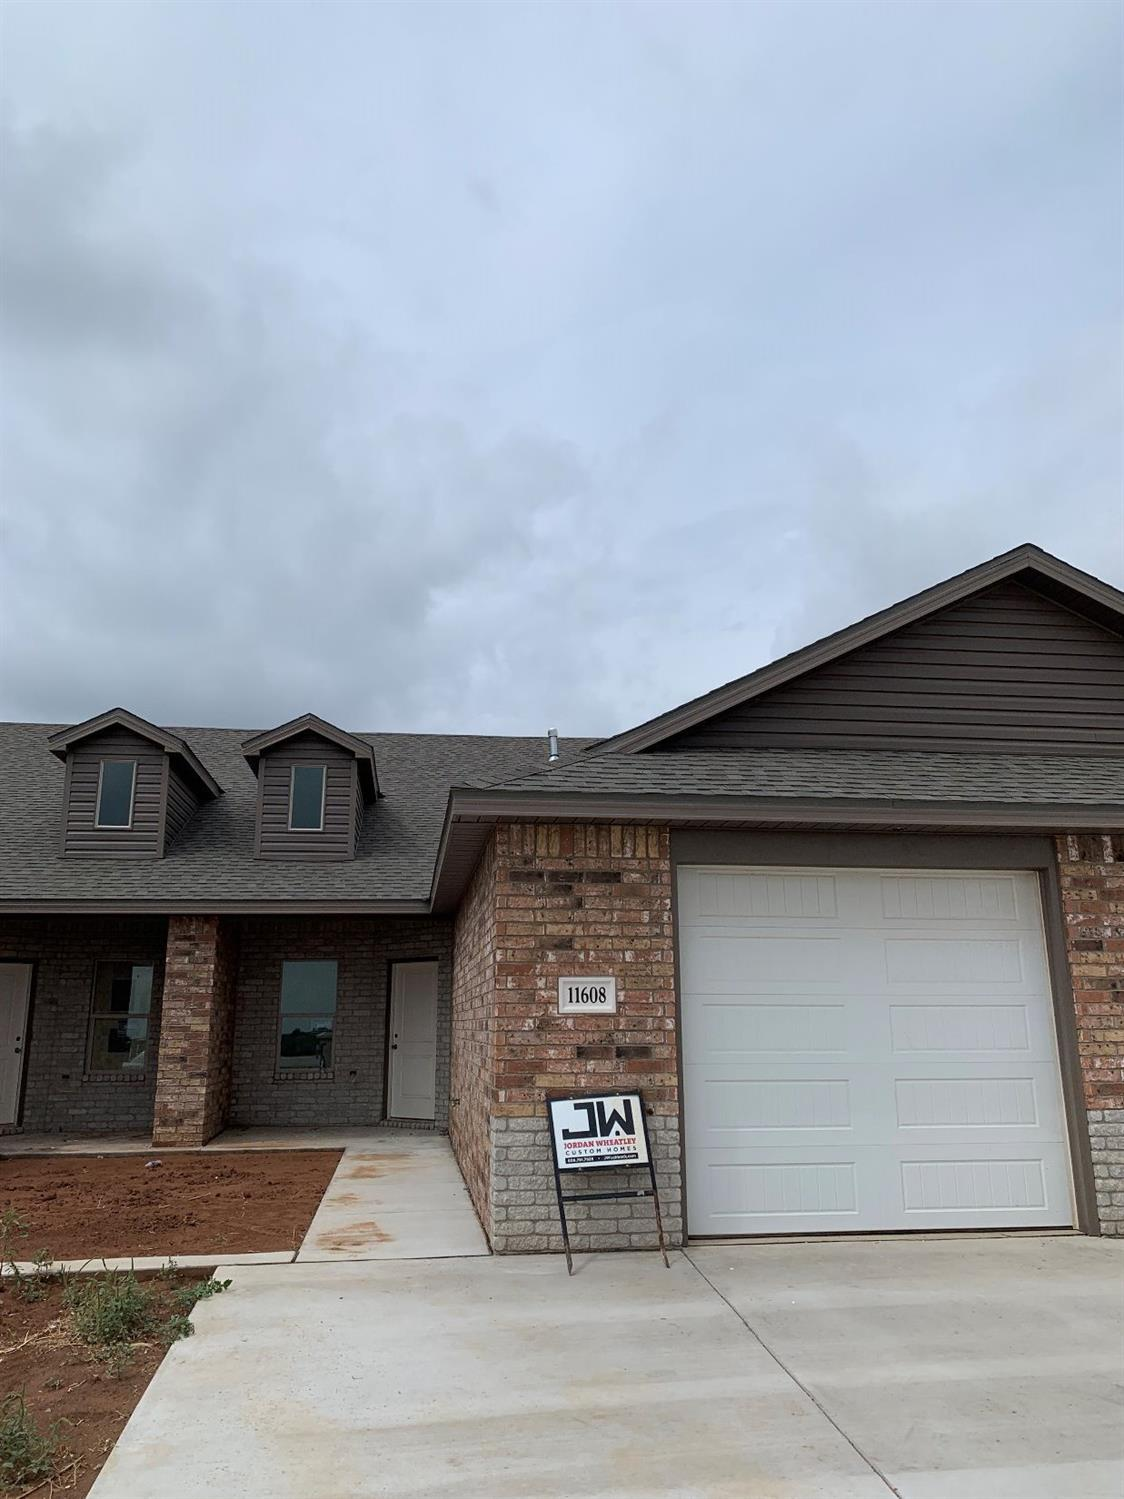 NEW CONSTRUCTION townhome by Jordan Wheatley Custom Homes.  Move-in ready 2/2/1. Tile floors everywhere except carpet in bedrooms. No vinyl plank. Granite countertops, designer lighting and Delta faucets.  Complete with metal fascia, xeriscape front yards,and artificial turf. Backyard fenced, sprinkler system and sod. These townhomes are perfect for anyone wanting to simplify their living or investment in SW Lubbock!